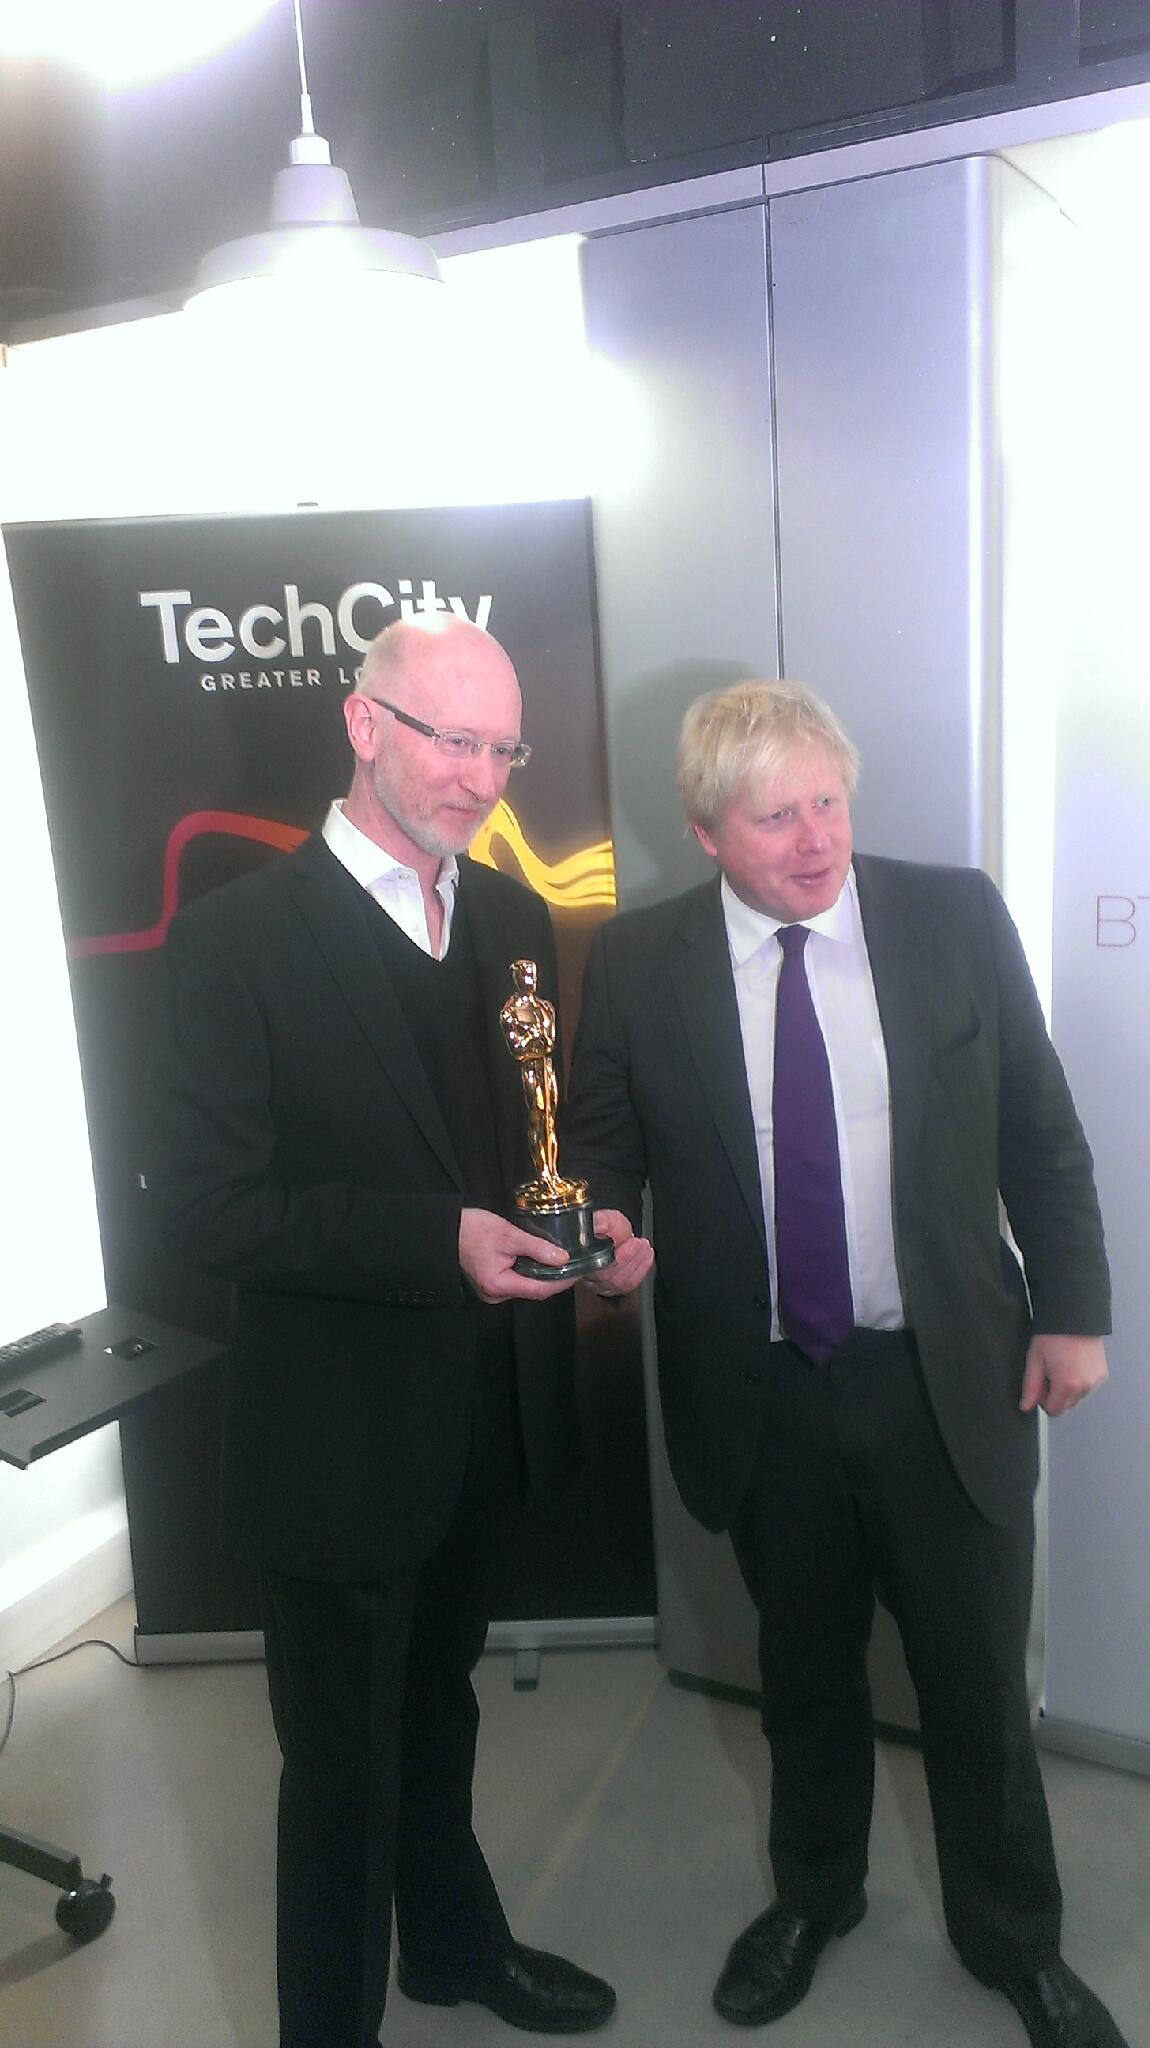 Great visit @TechHub Met #Oscar winning Will Sargent and launched my vision to make #London tech capital of the world http://t.co/VEU5xoOuqS